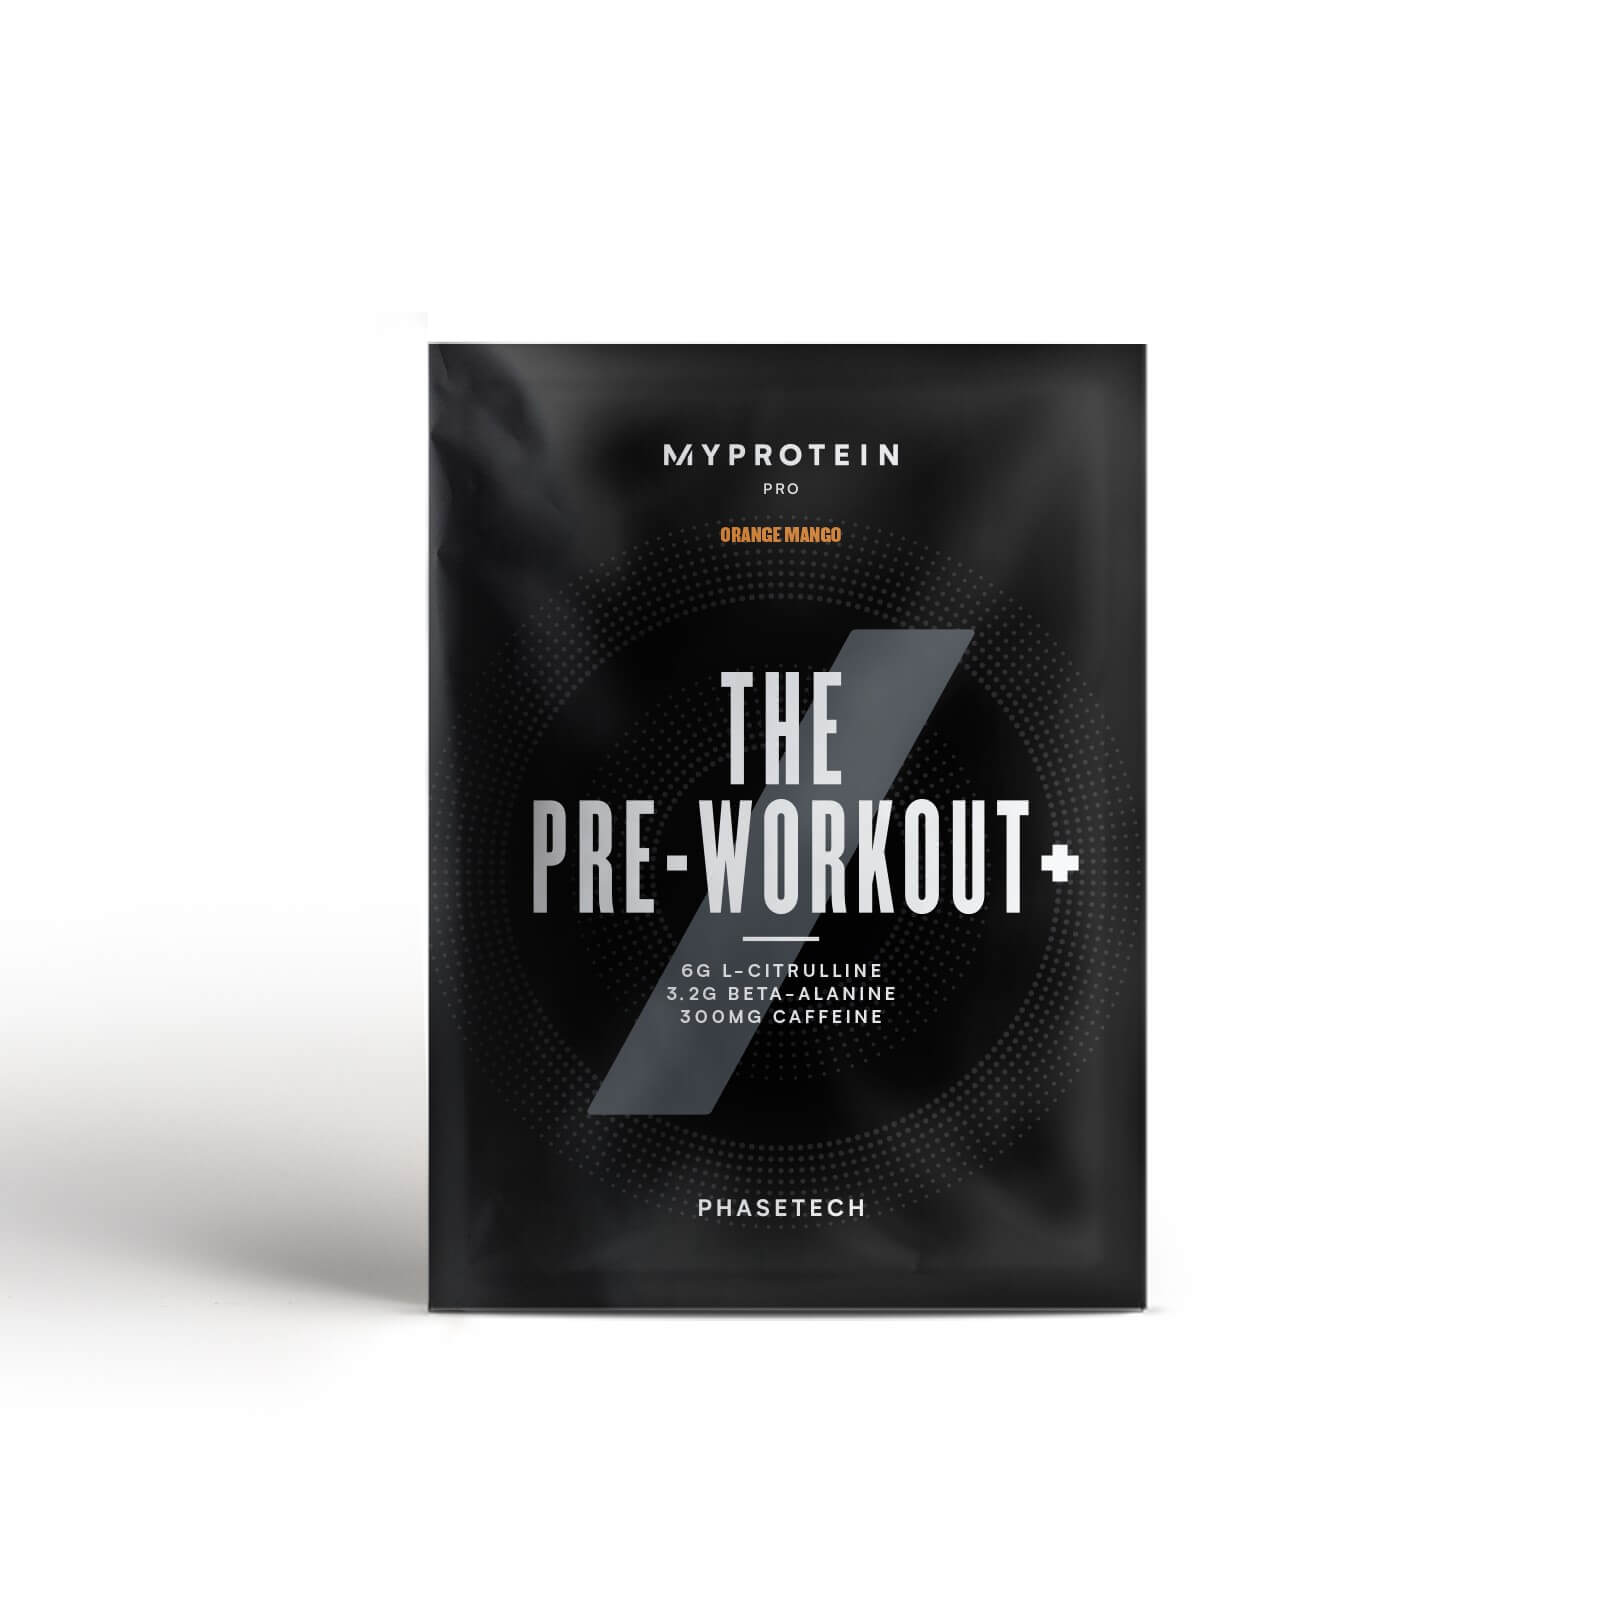 THE Pre-Workout+ (Échantillon) - Orange Mangue